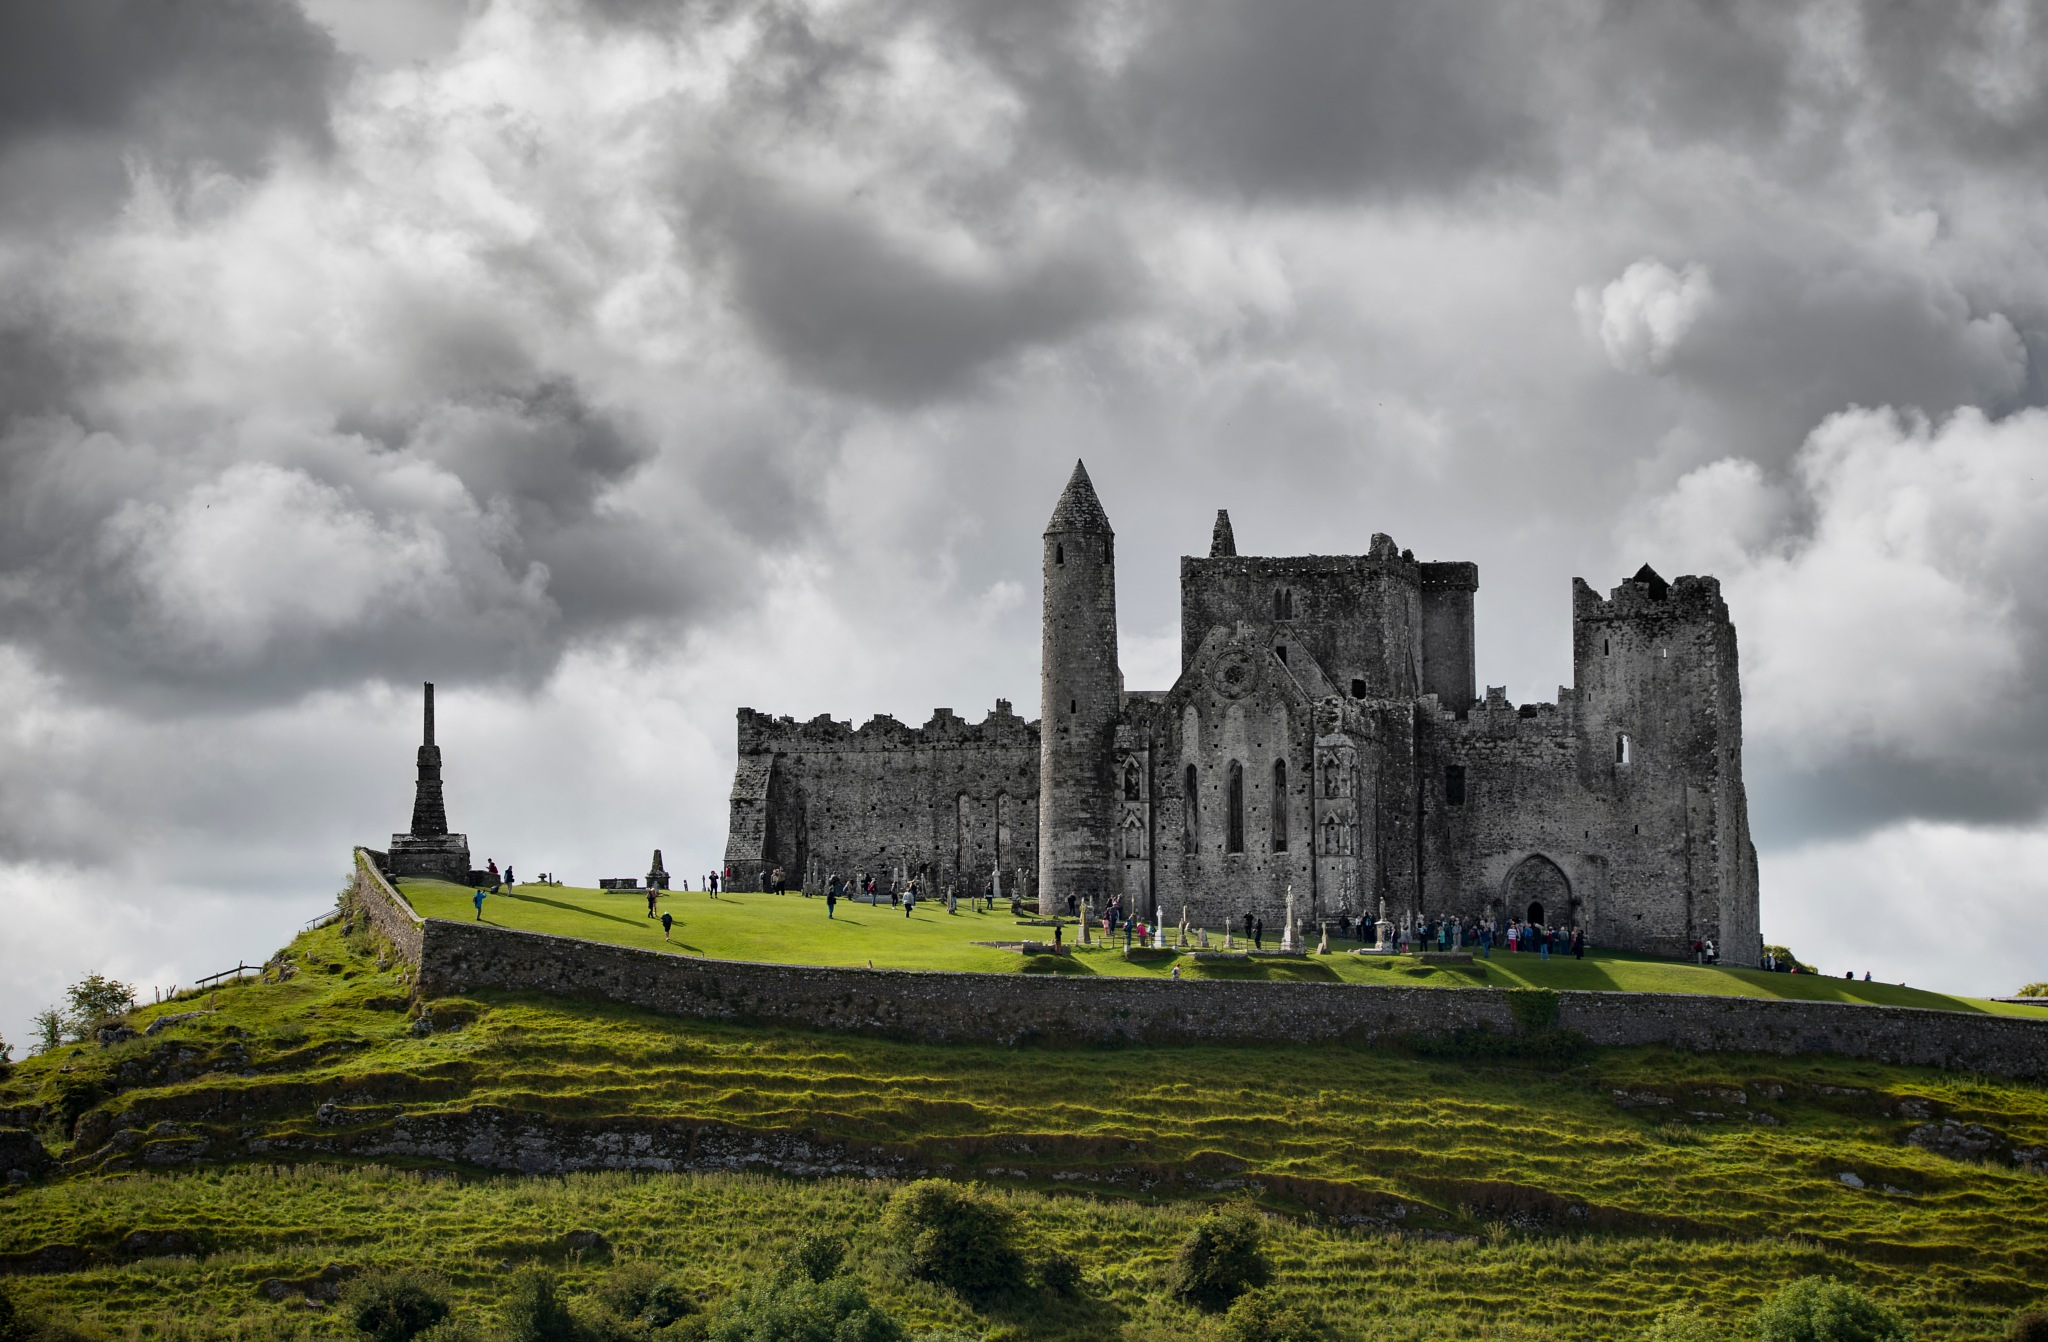 The Rock of Cashel, Ireland by Paul Tebbs @ImaginPhotography